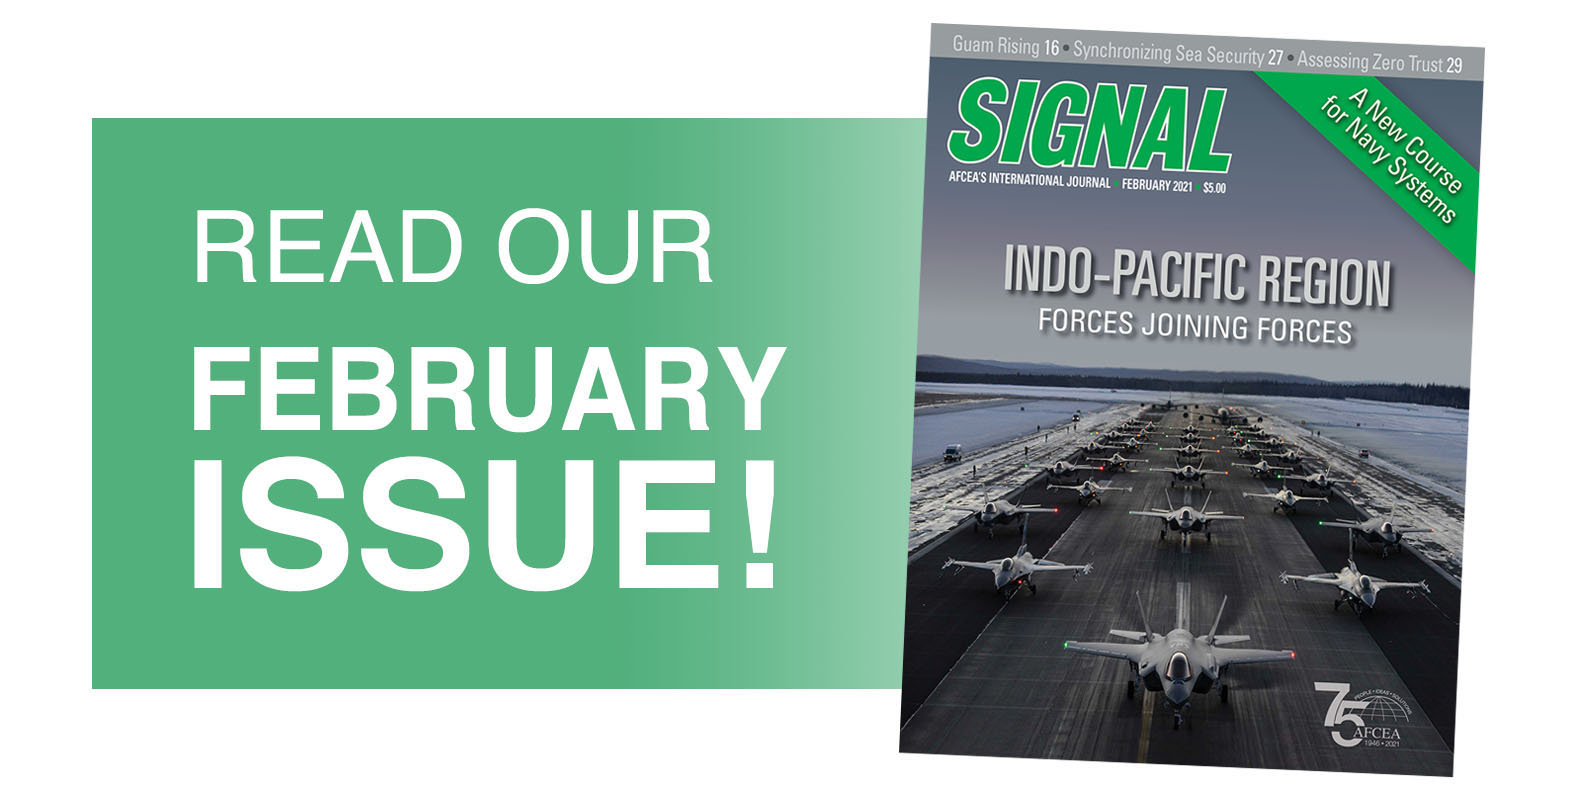 SIGNAL February Issue